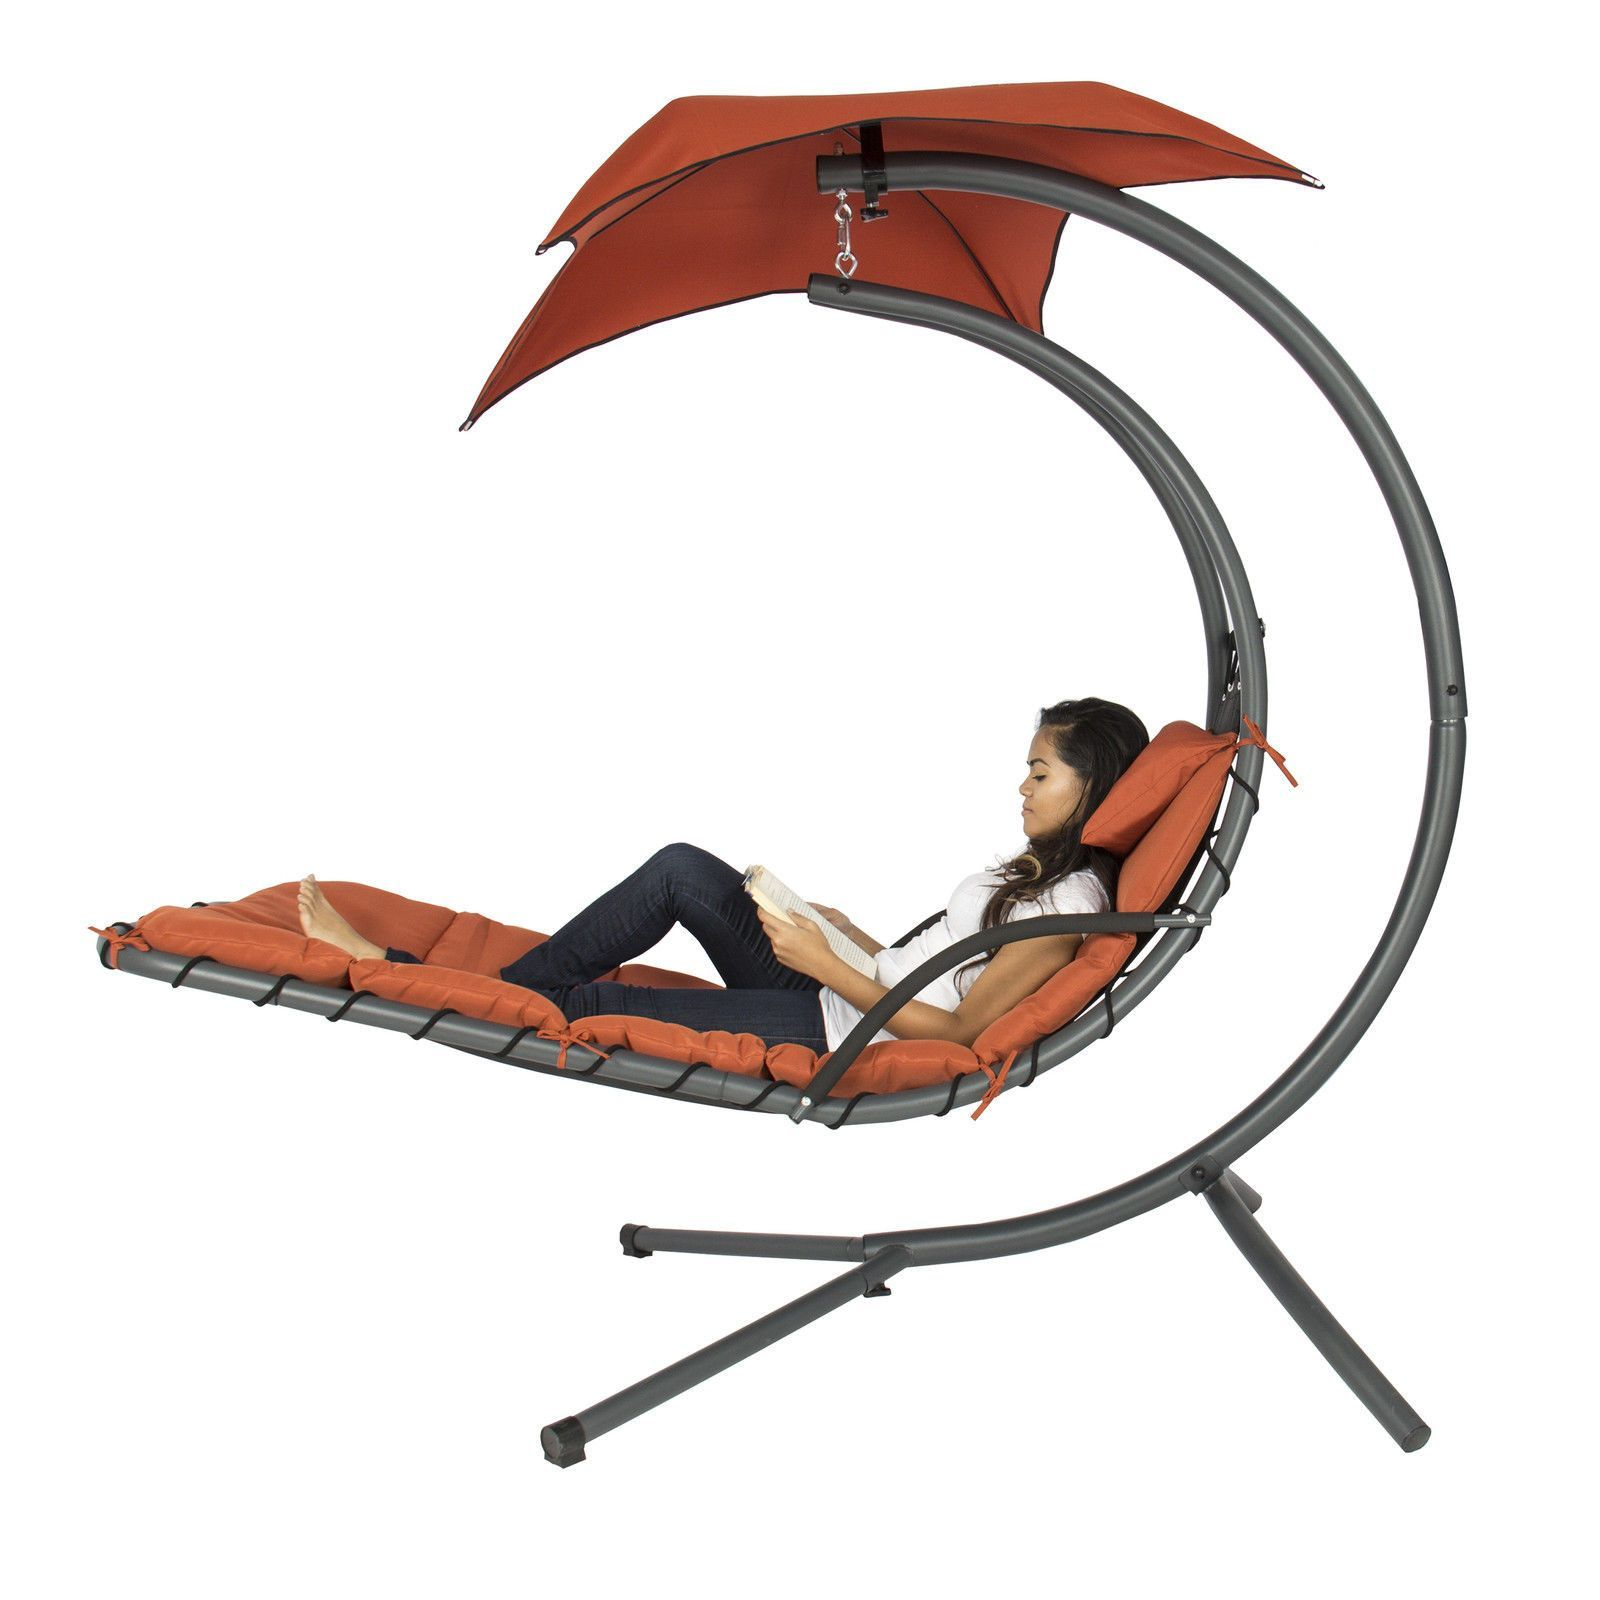 Hanging chaise lounger chair hammock chair porch swings and canopy